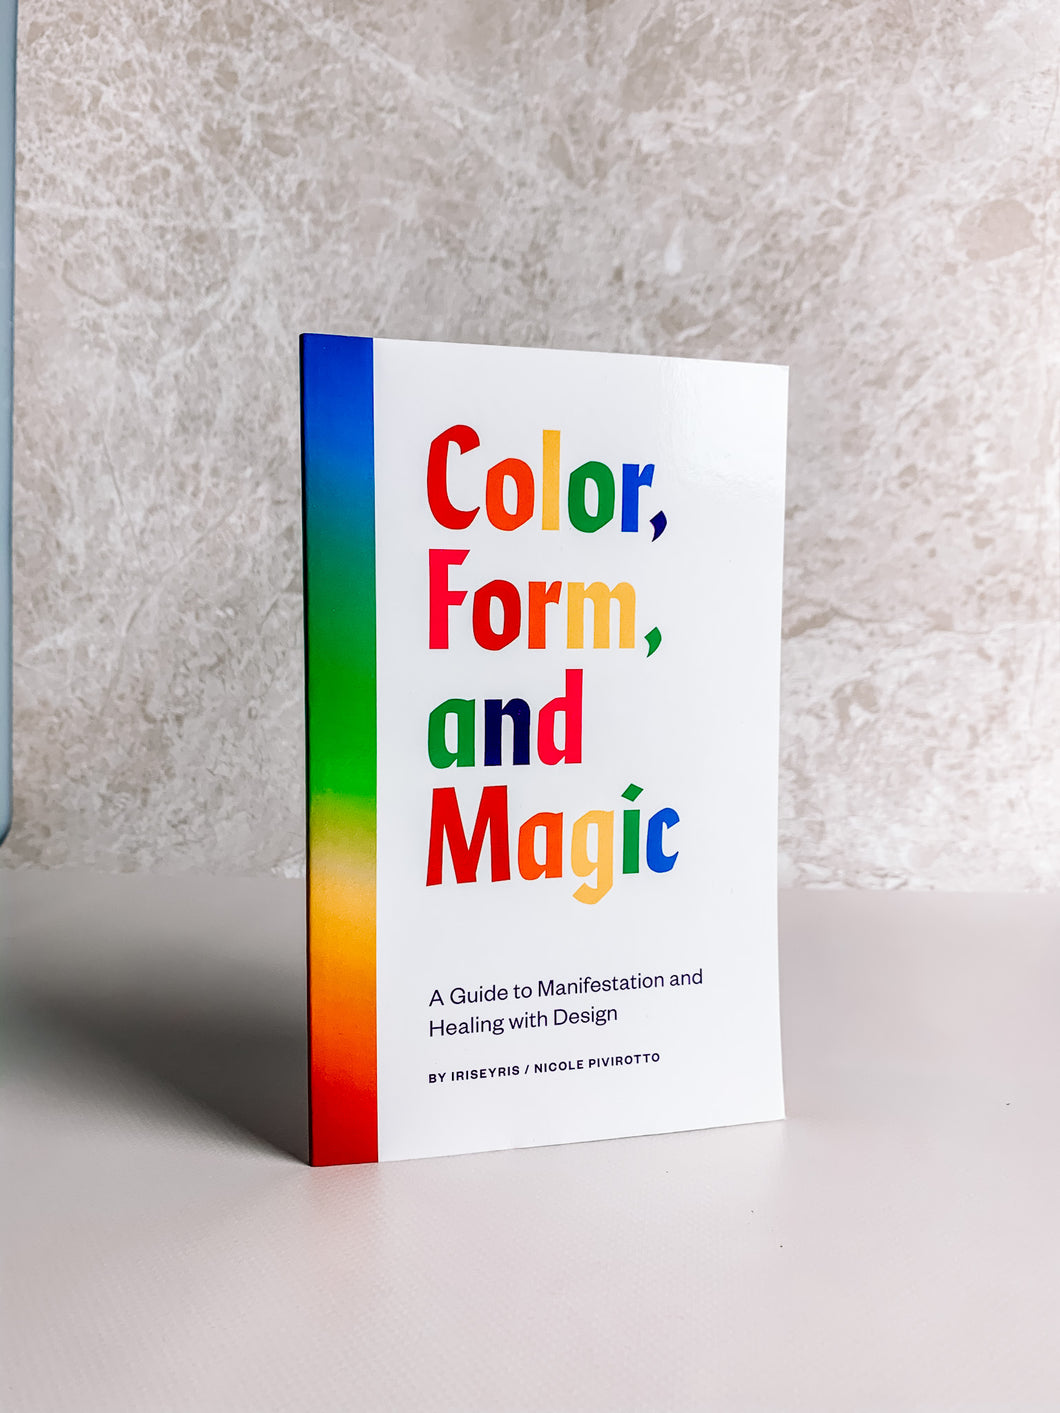 Colour, Form and Magic: A Guide to Manifestation and Healing With Design by IrisEyris/Nicole Pivirotto